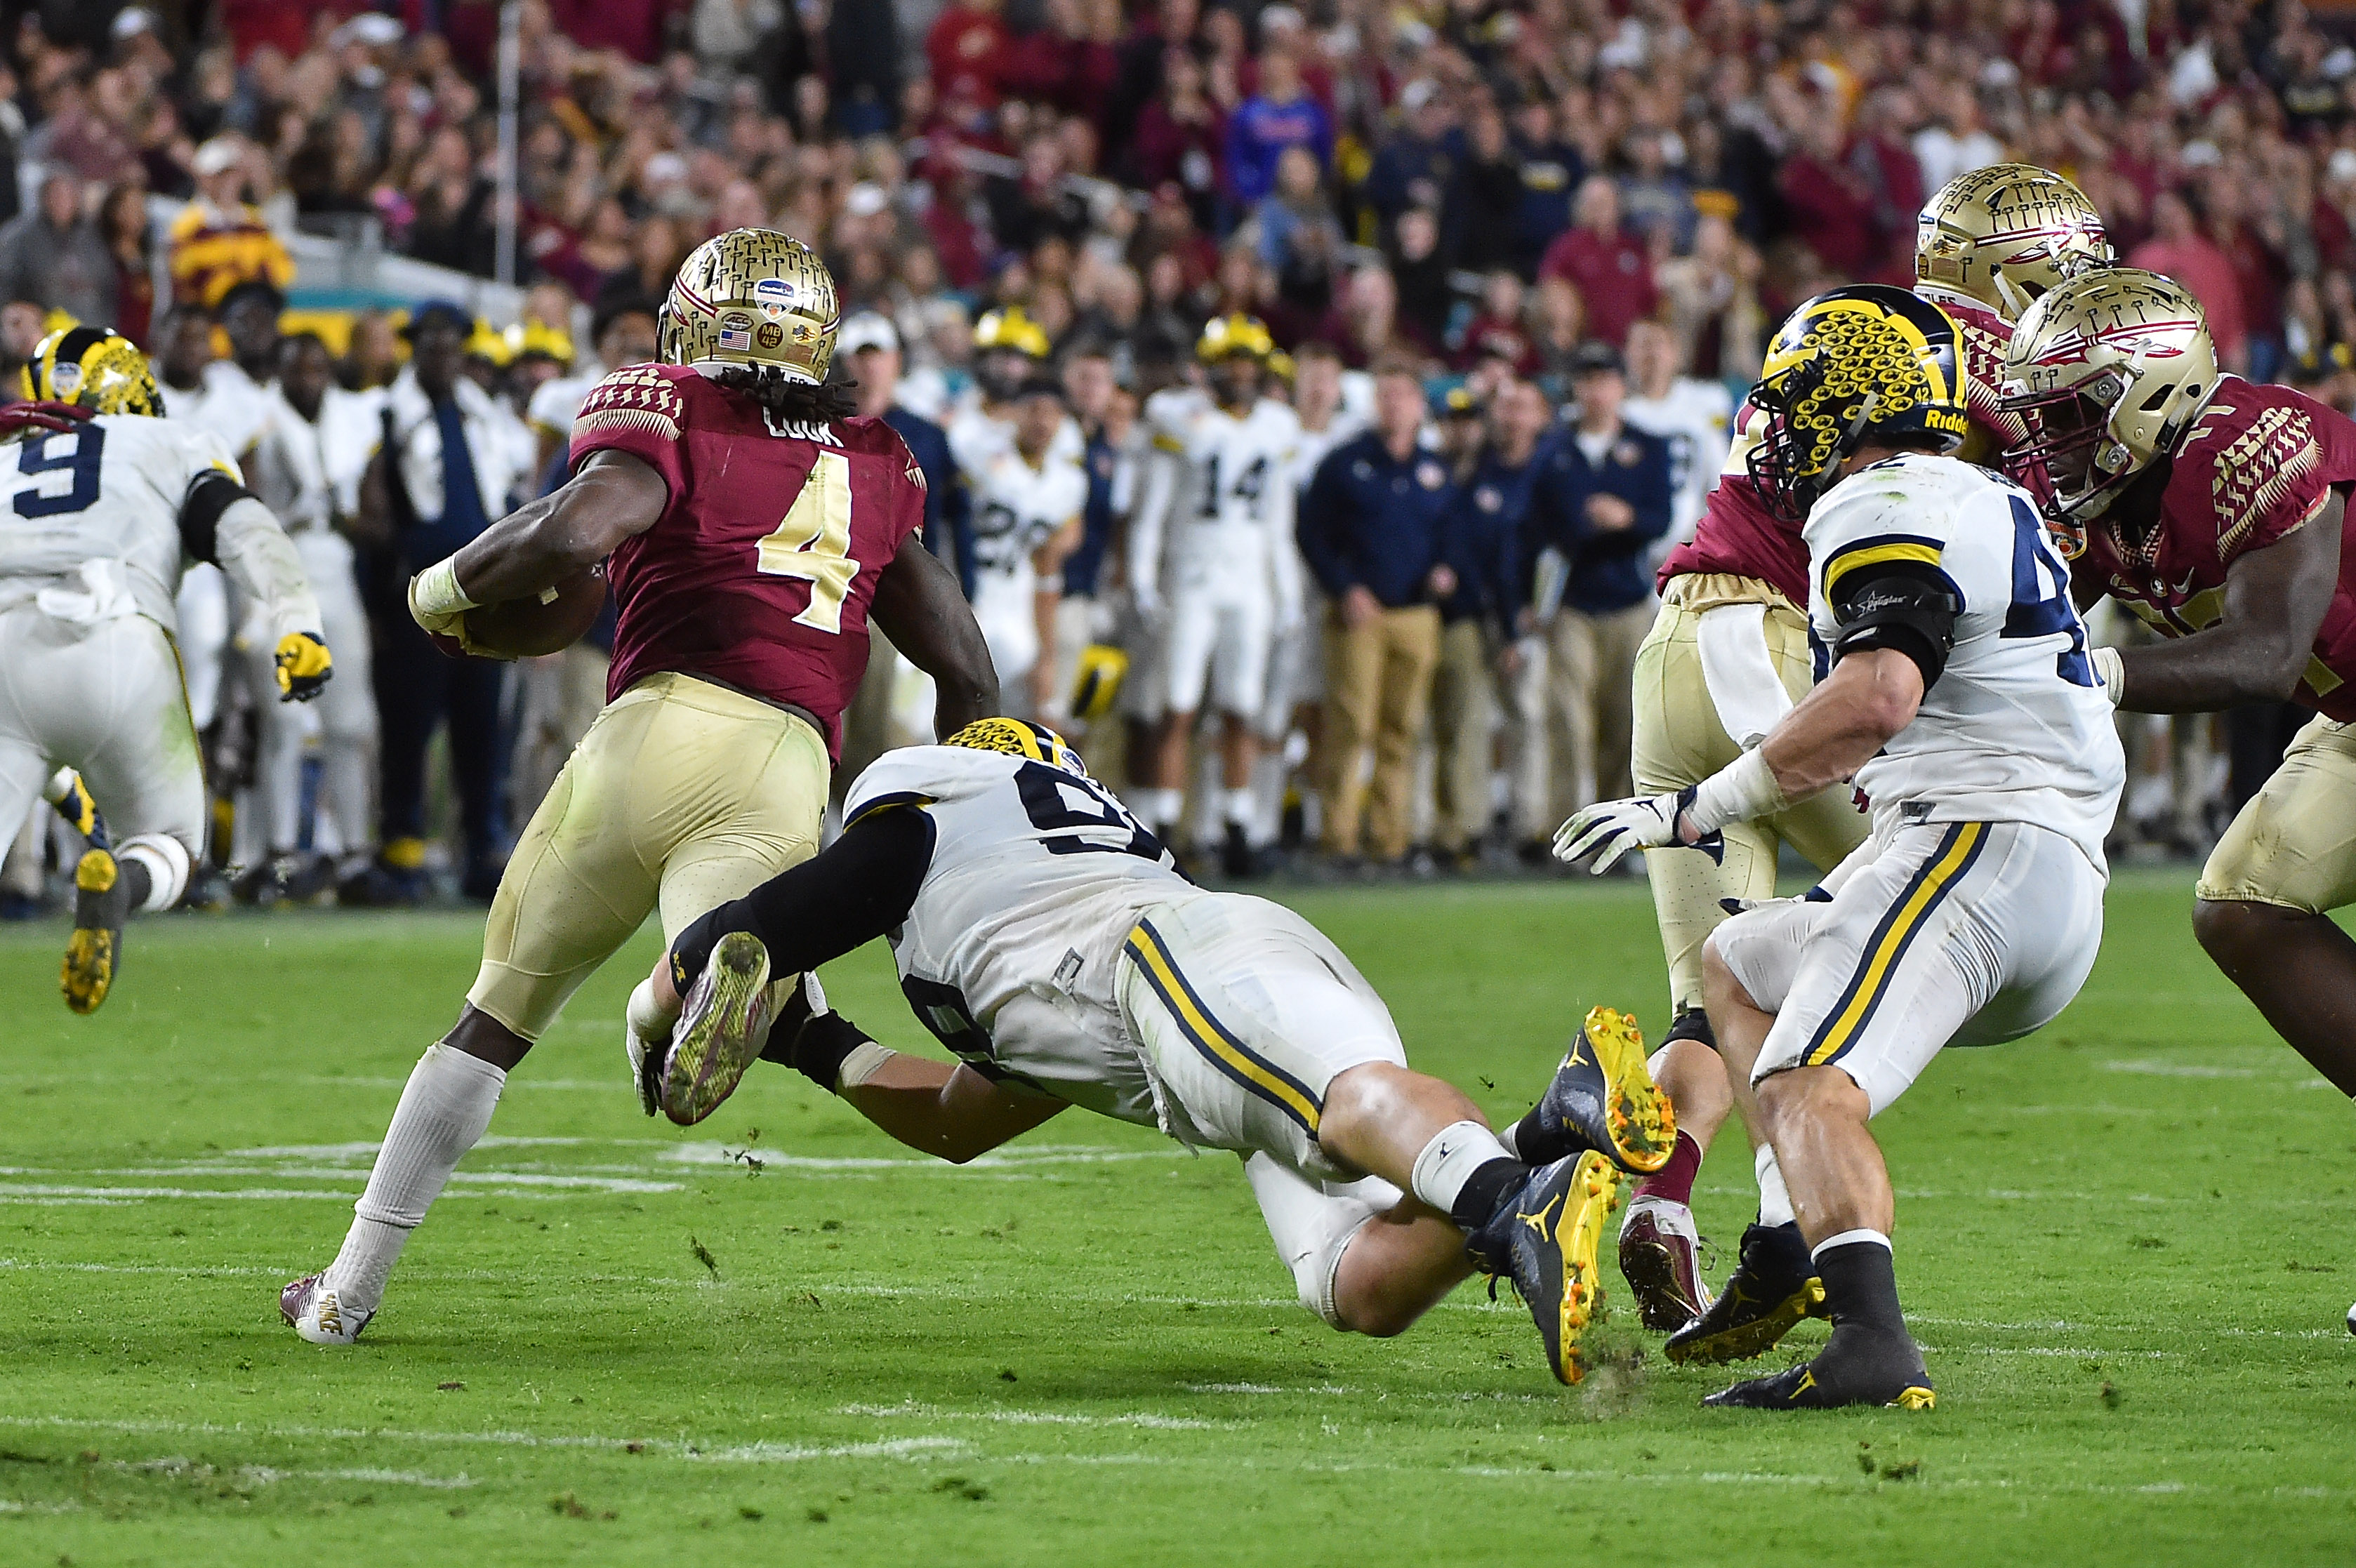 9778672-ncaa-football-orange-bowl-michigan-vs-florida-state-1